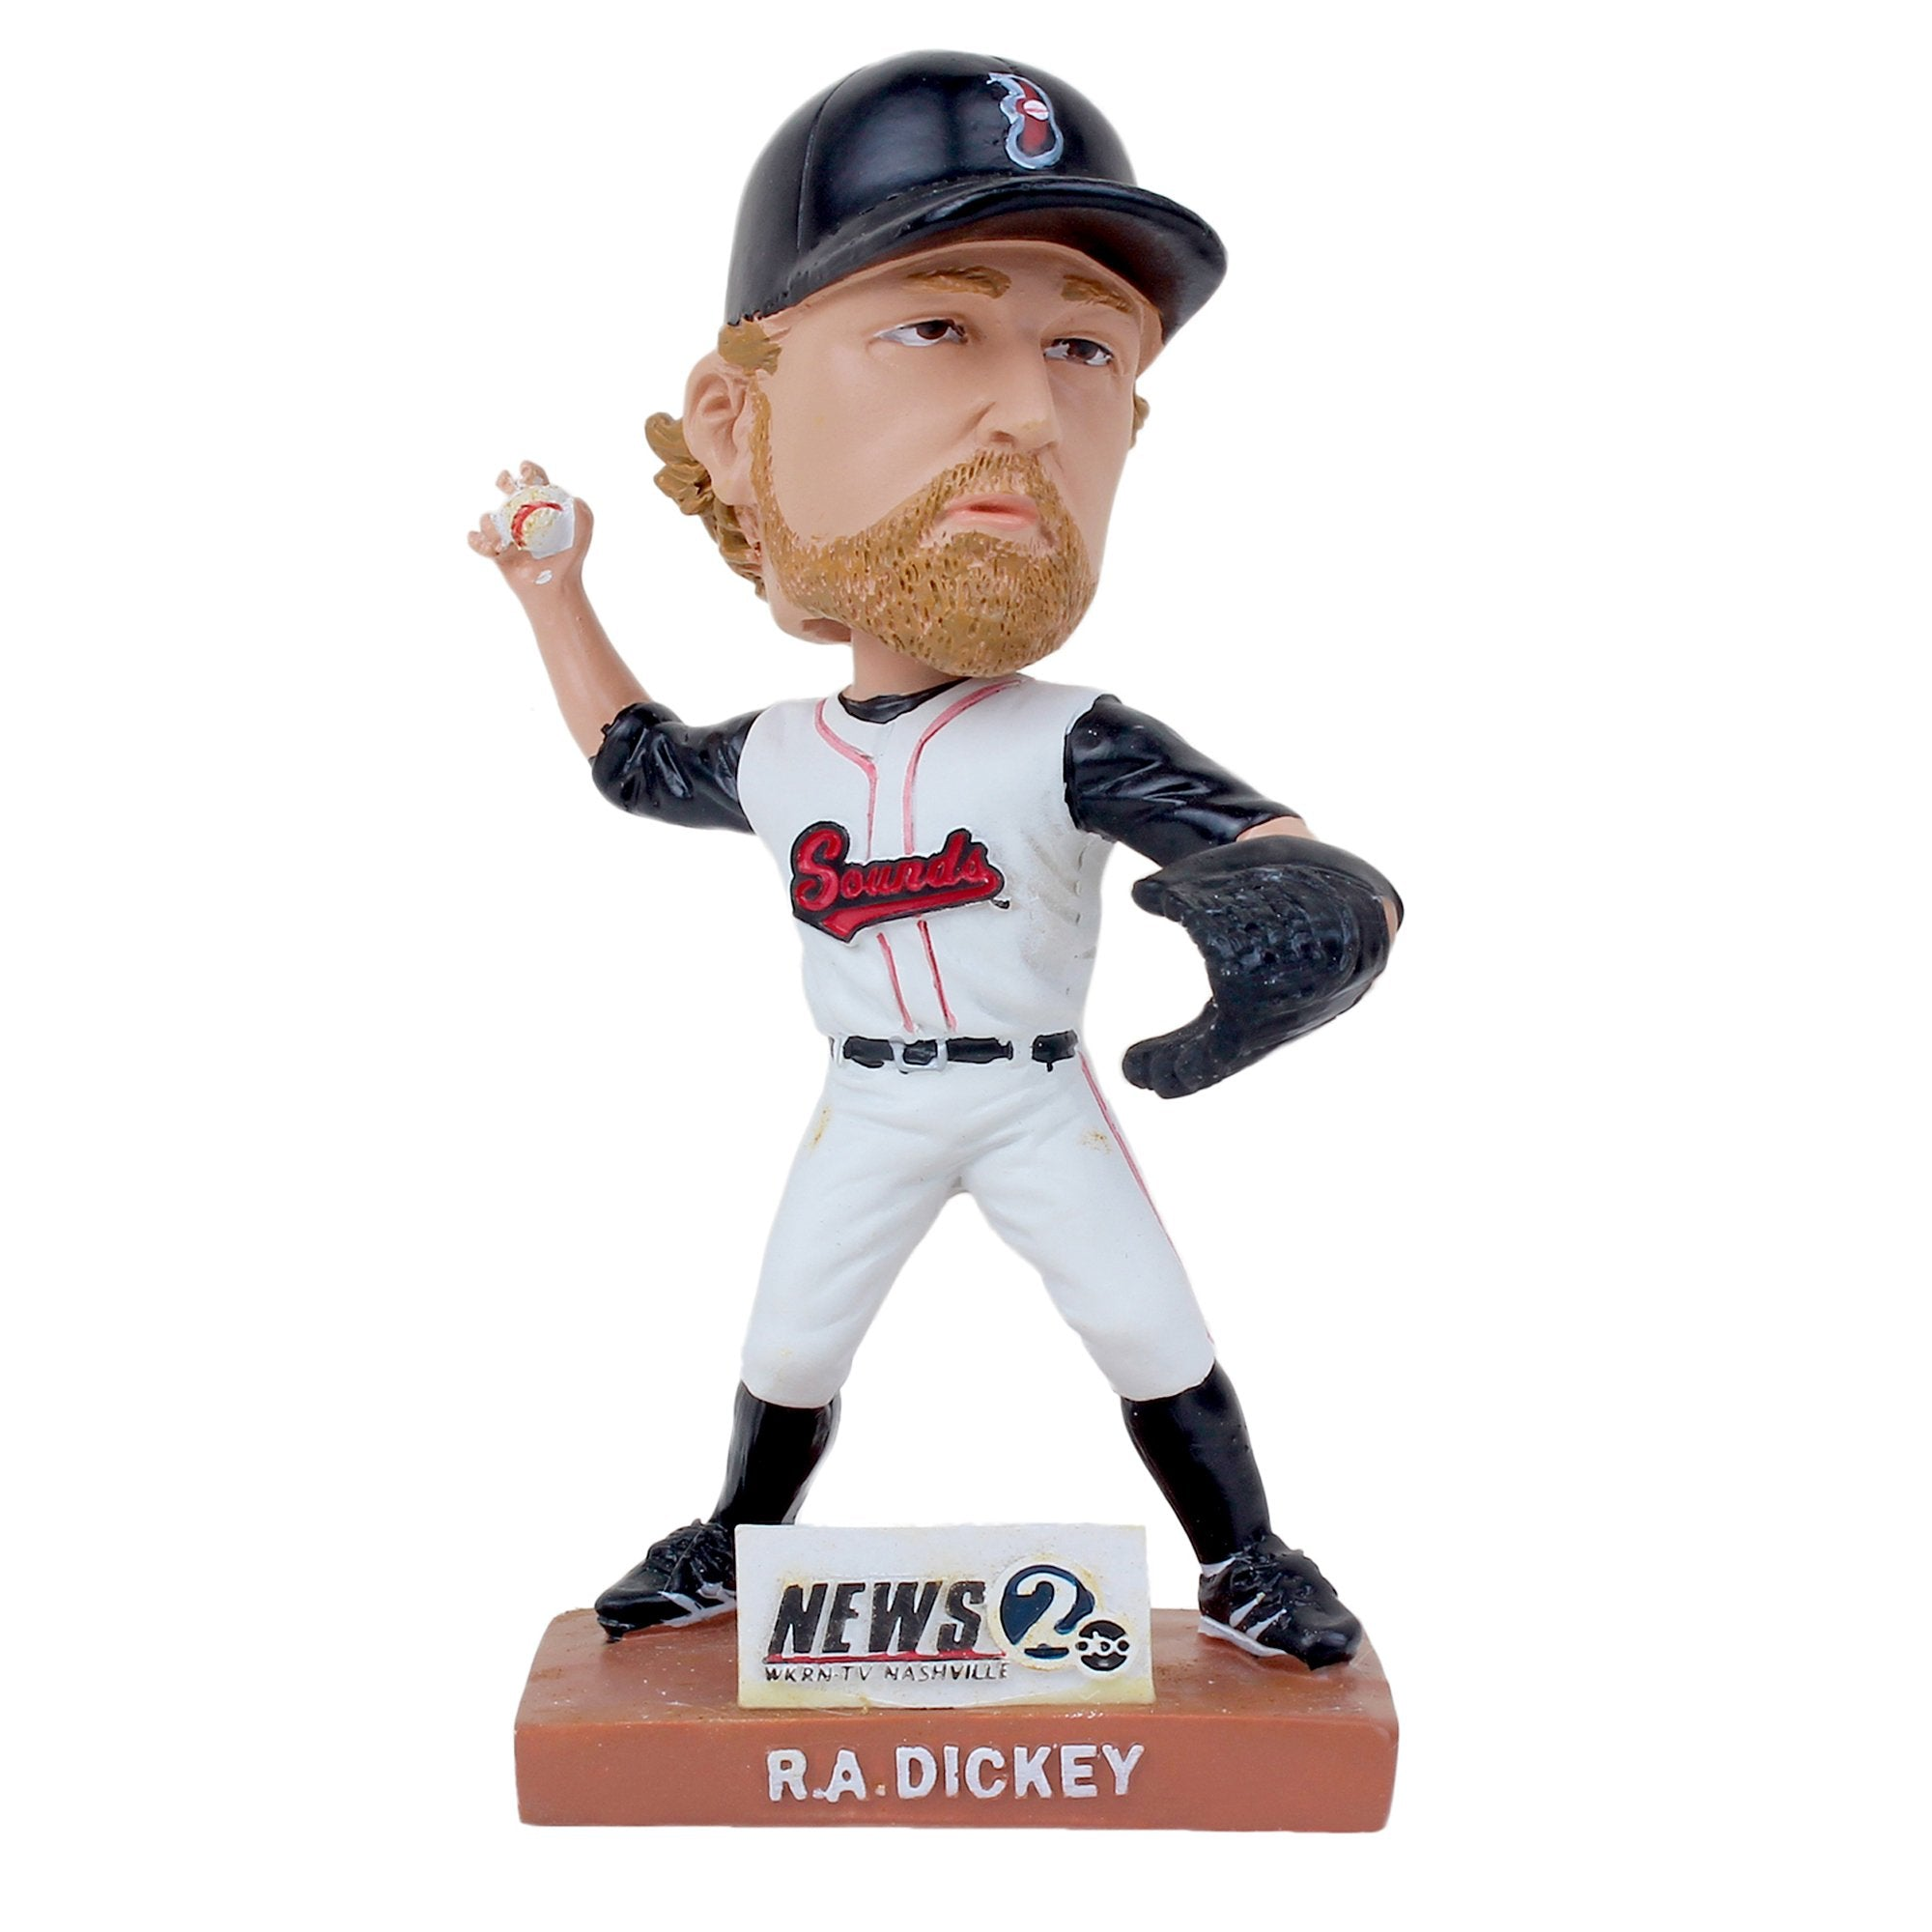 Player R A Dickey